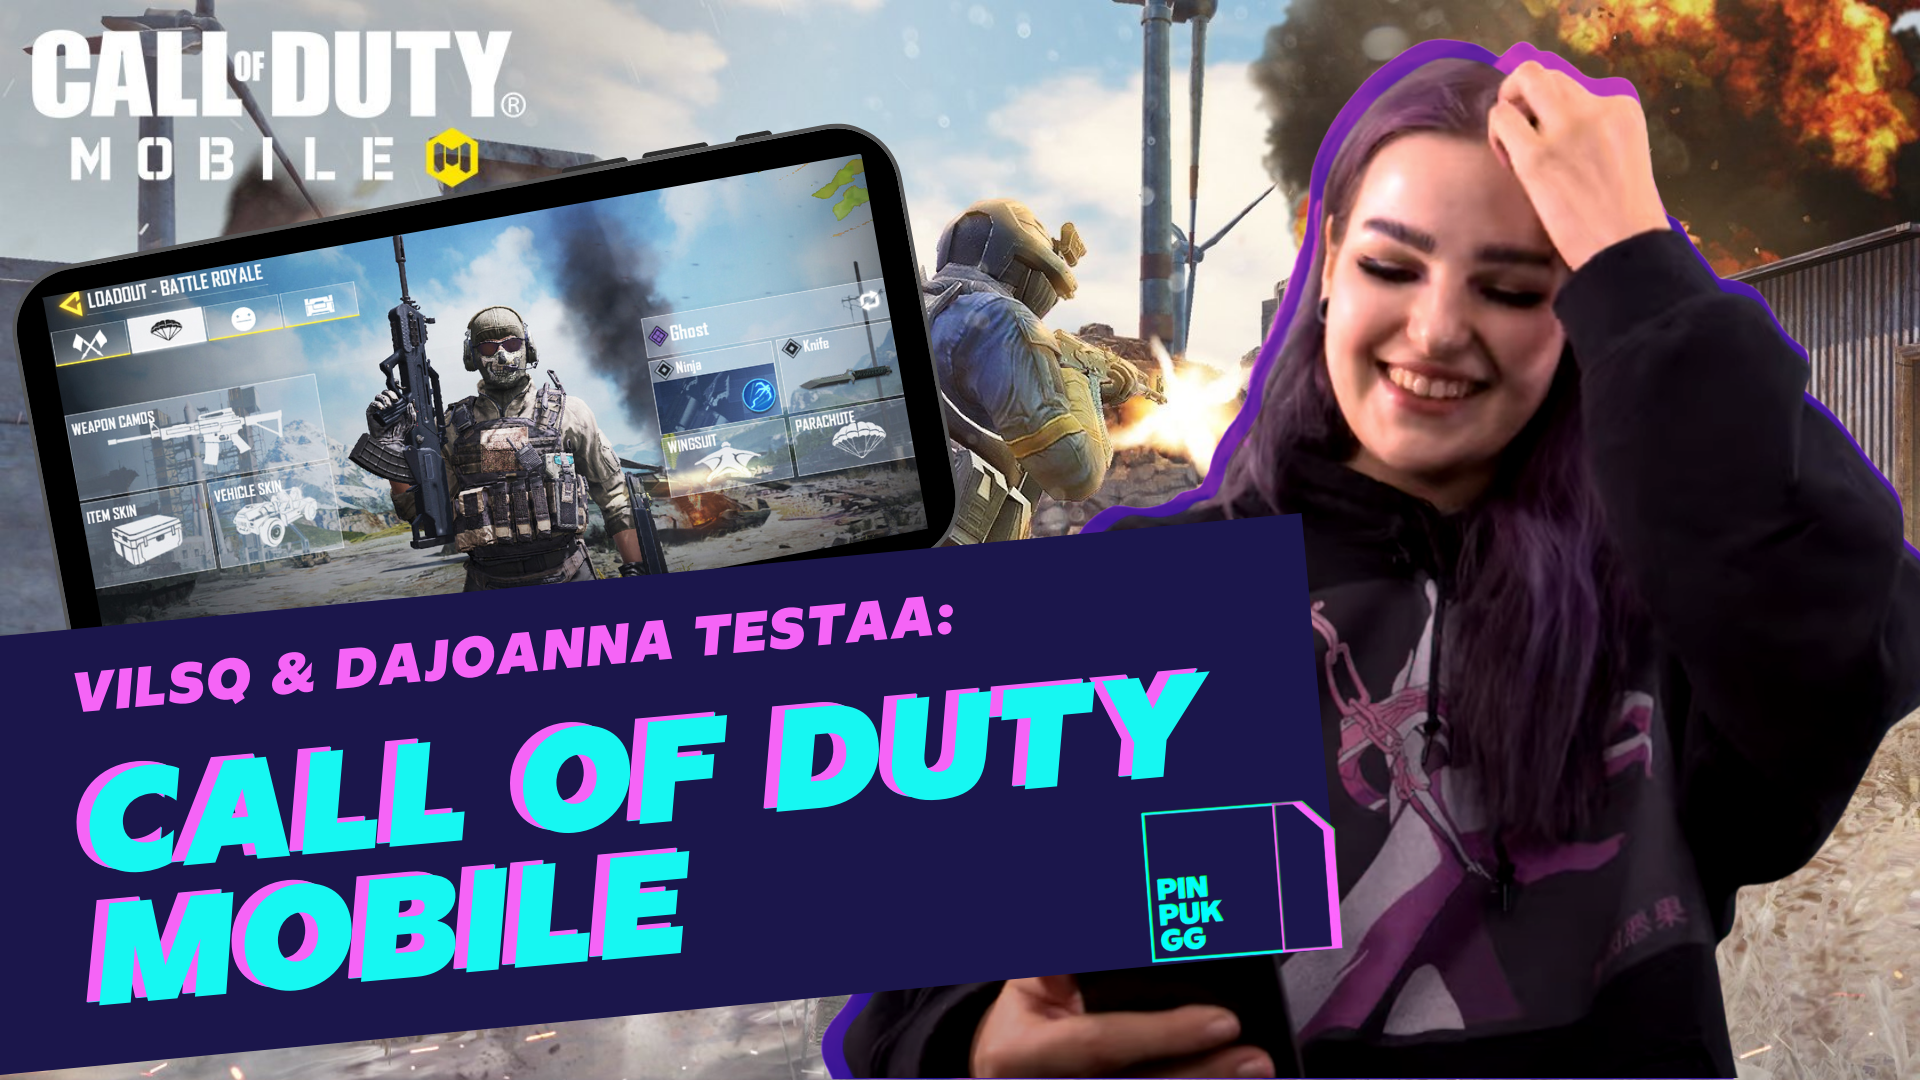 Call of Duty mobiiliversio - PinPukGG